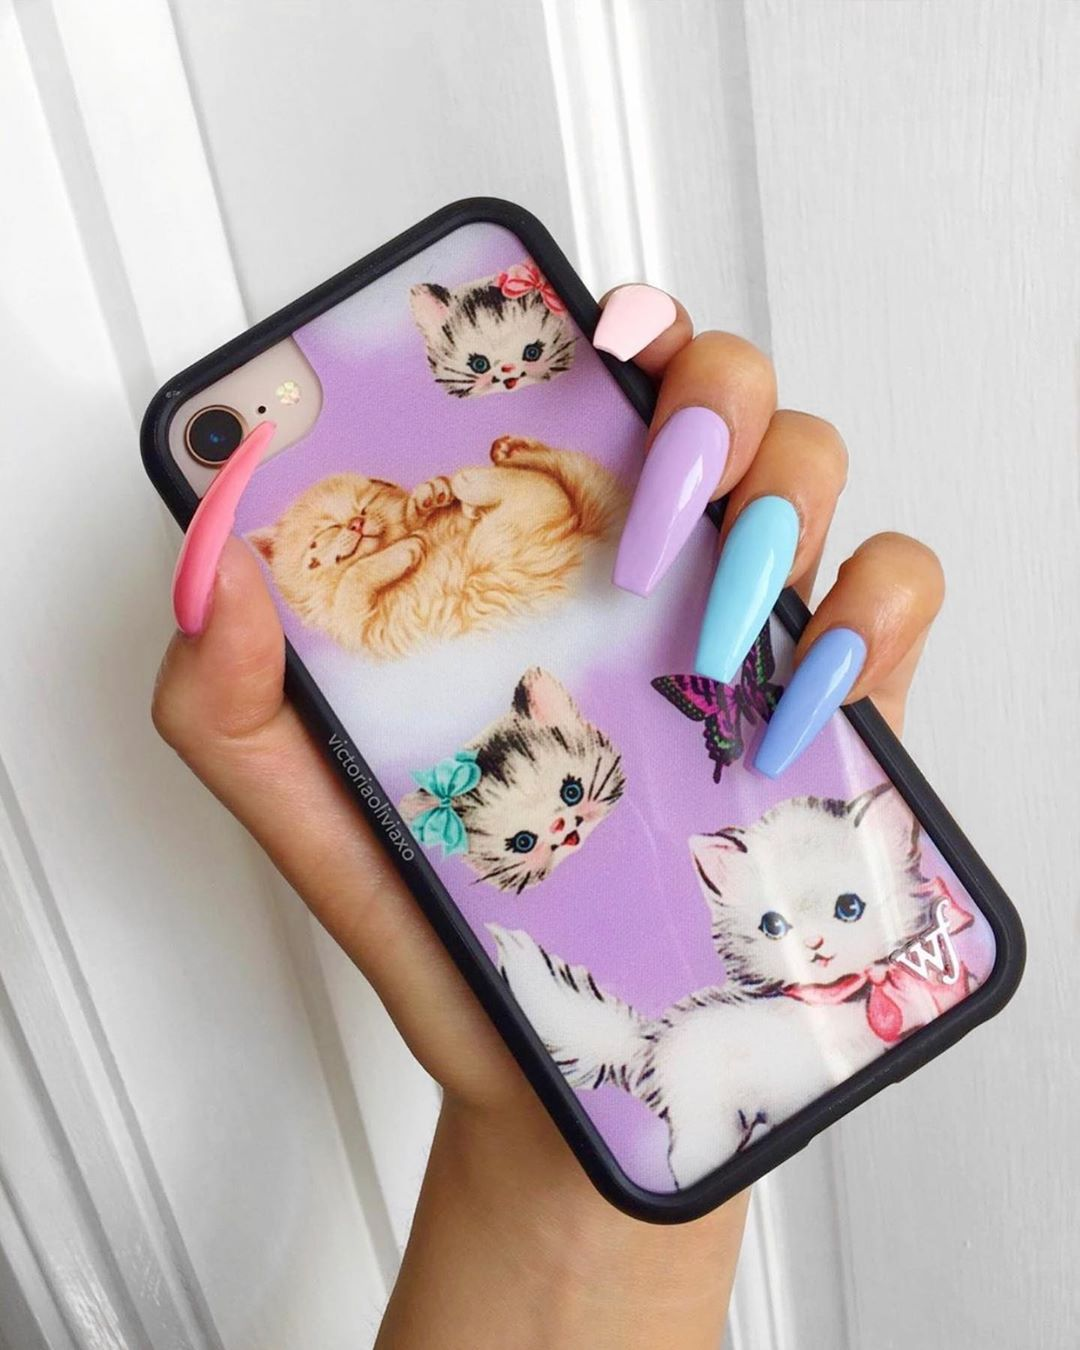 Wildflower Cases On Instagram Kittens One Of The Many Cases You Can Get Right Now For 40 Off Sale En Wildflower Cases Wildflower Phone Cases Case